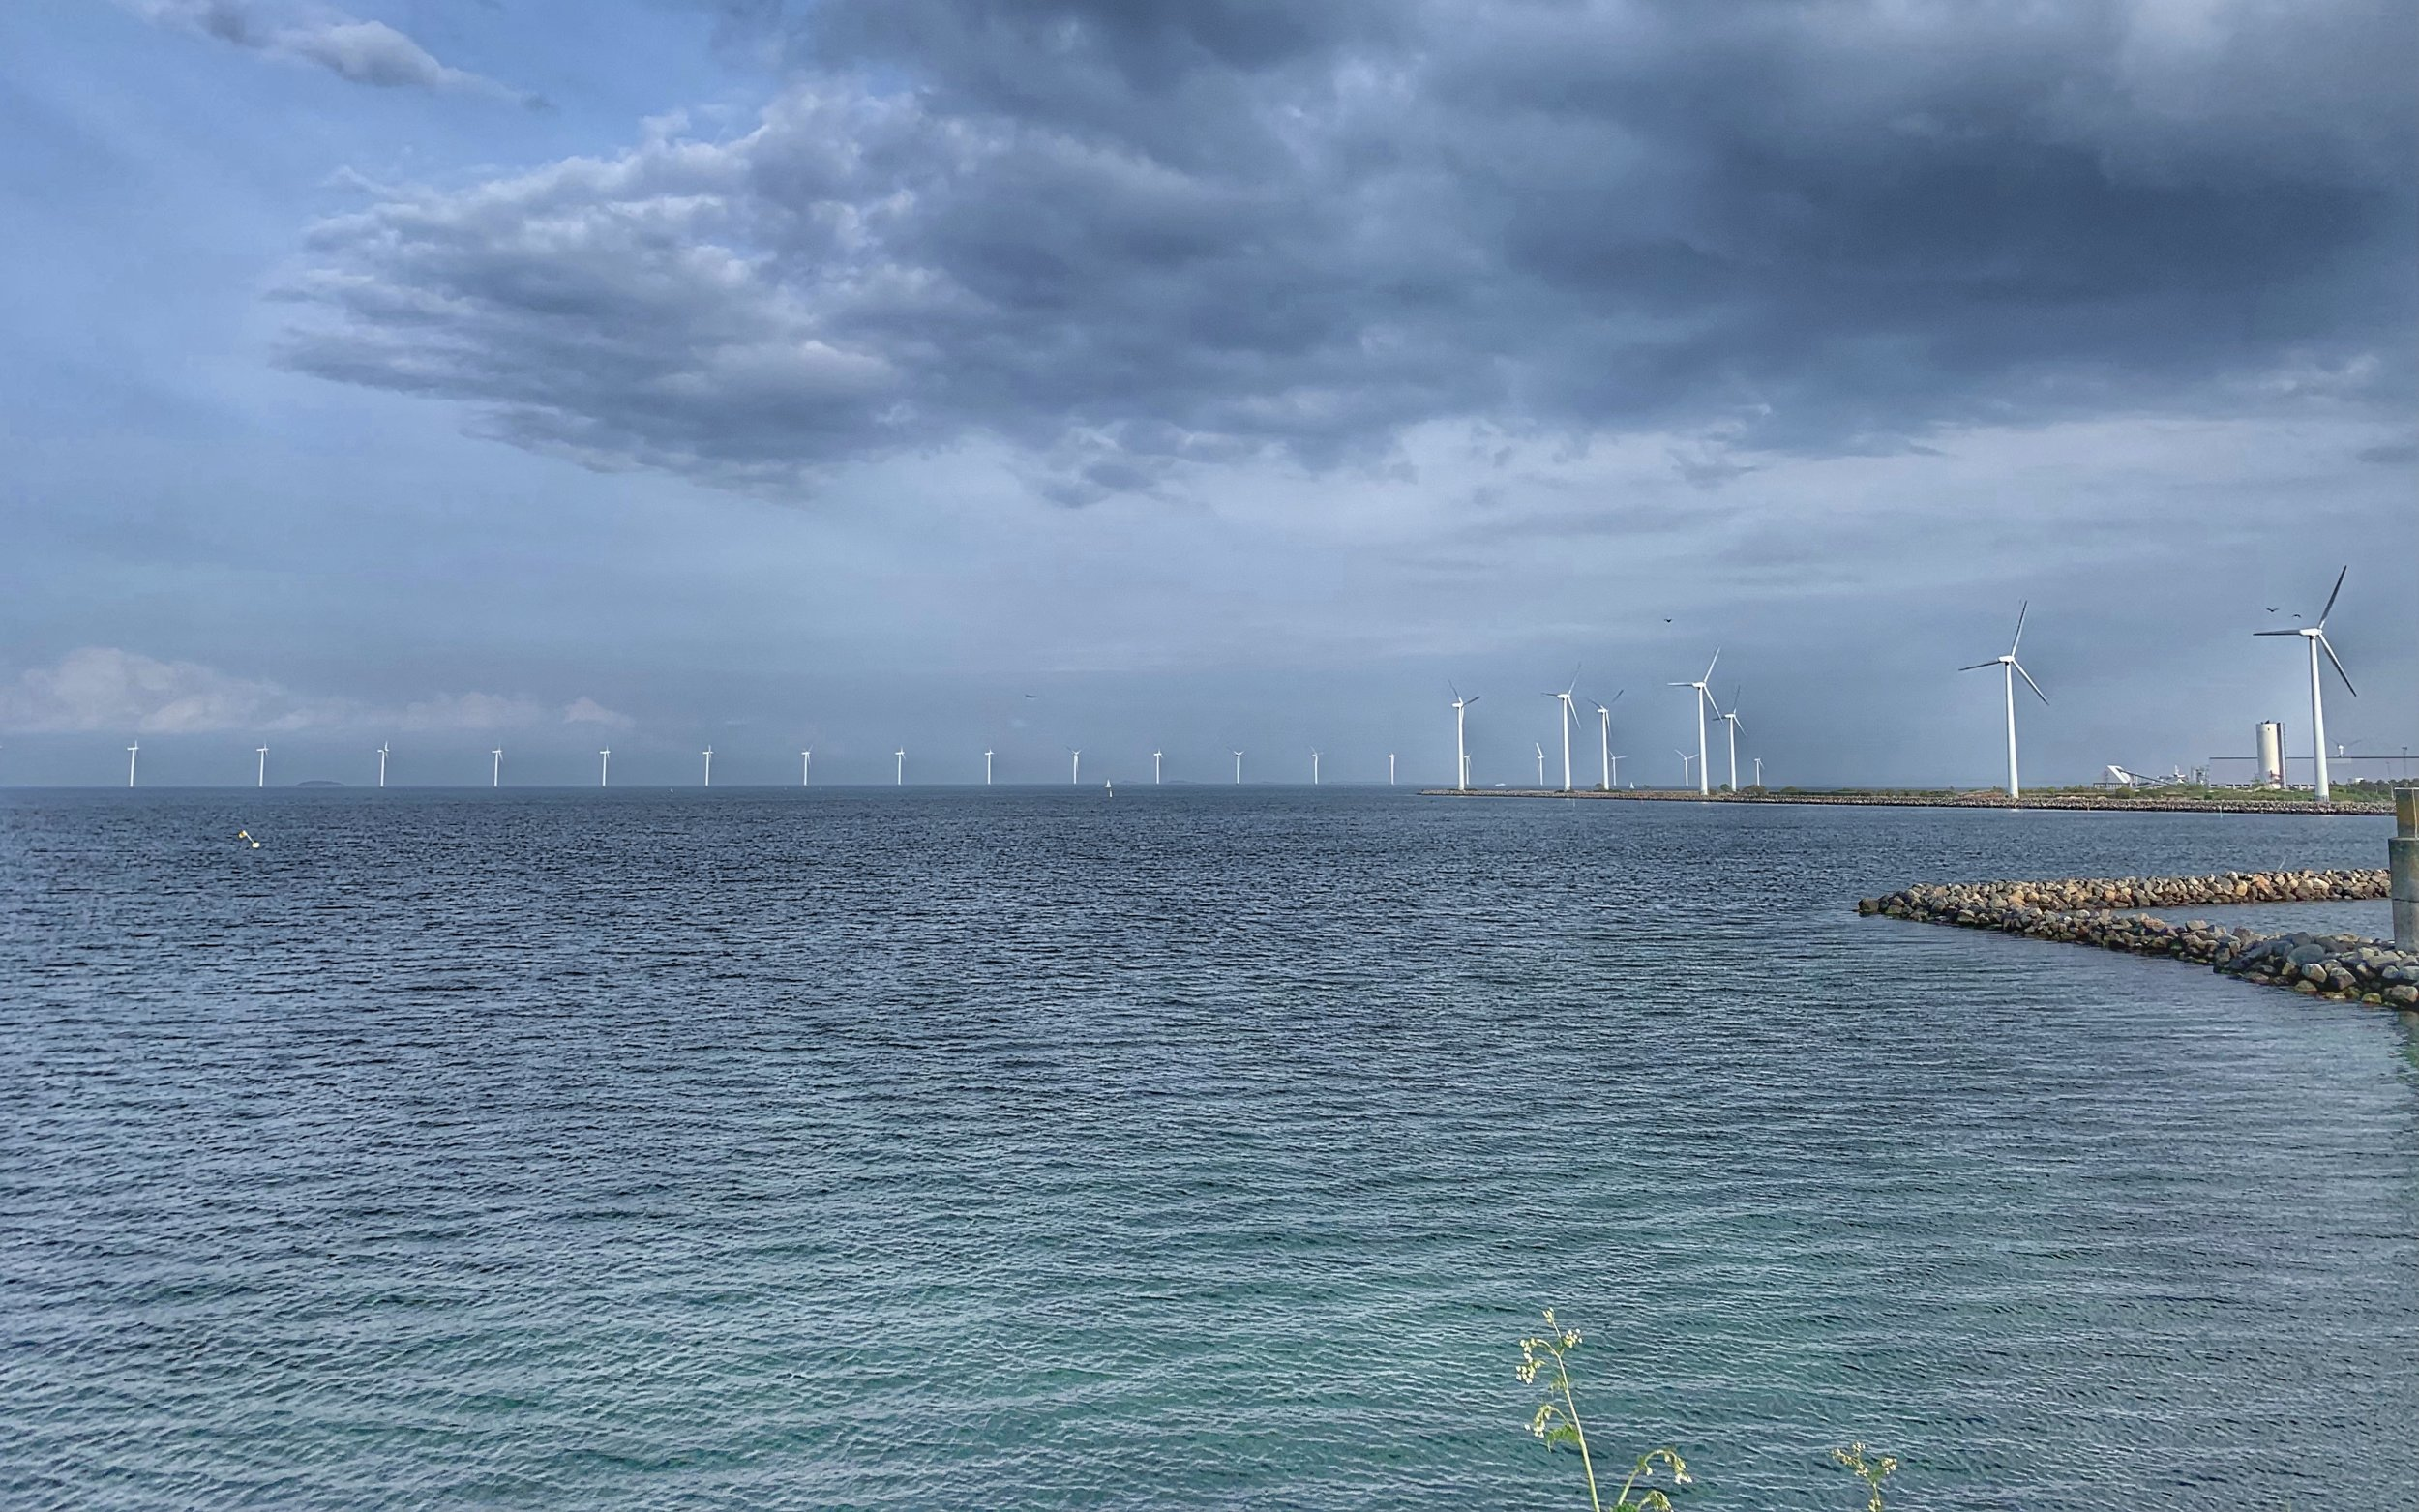 Plenty of wind turbines off the coast of Copenhagen too. The city aims to go carbon neutral by 2025